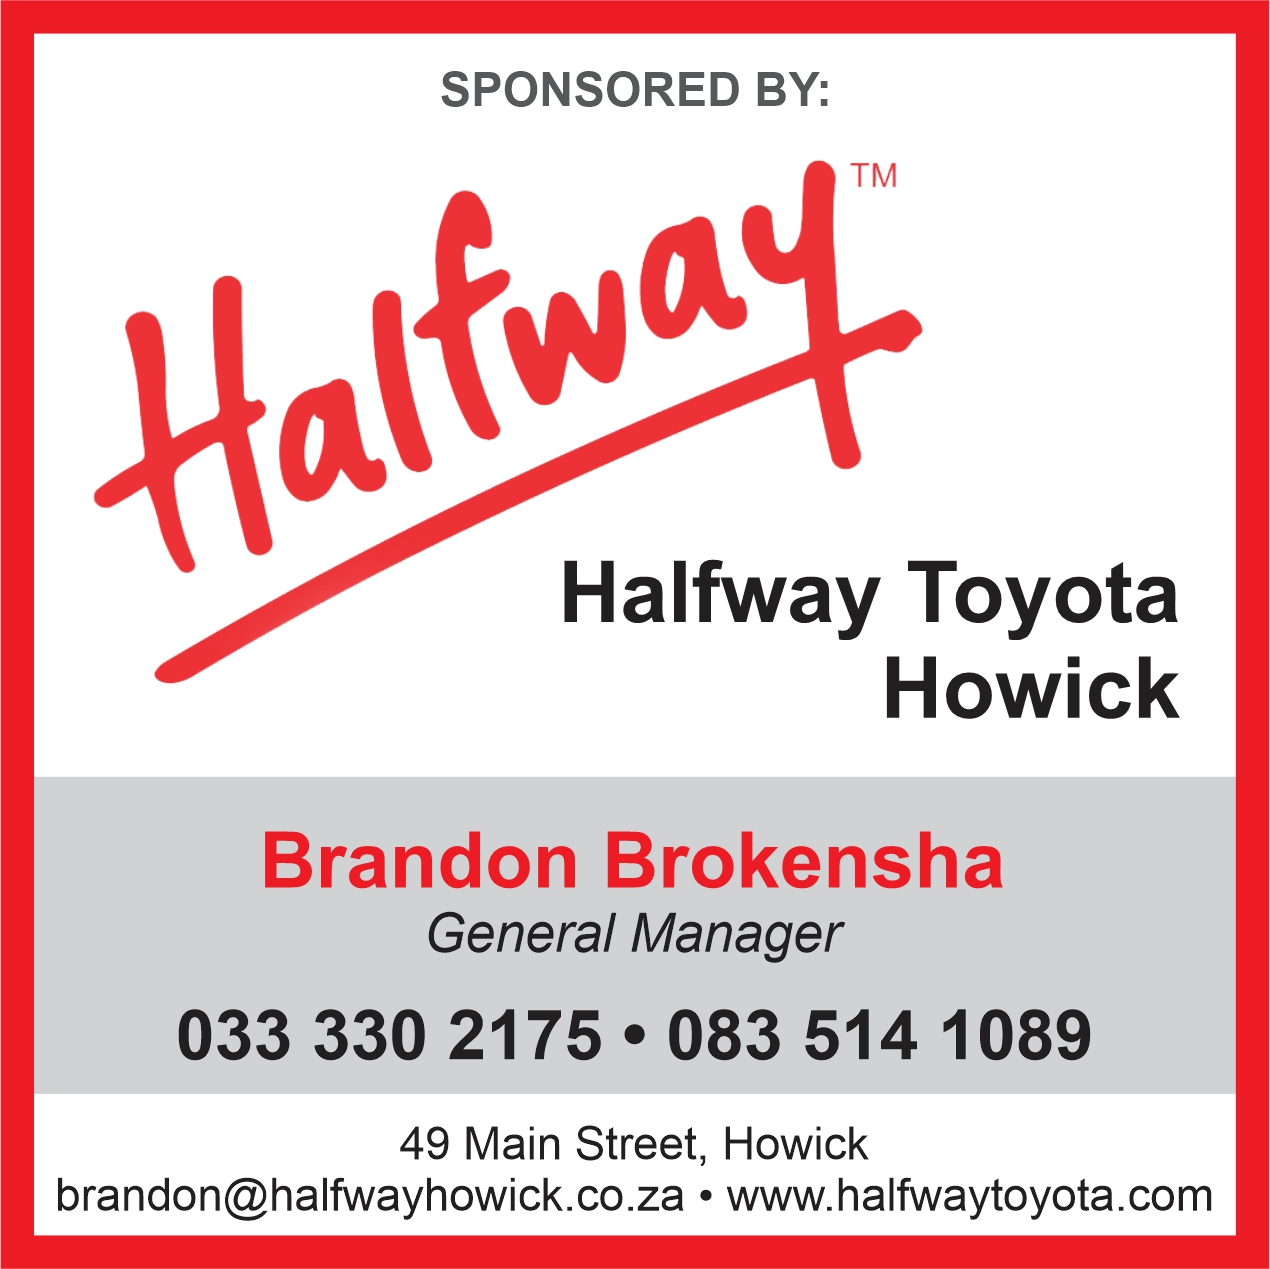 And an encouraging resumption of KZN10.com website and social media, as school sport returns - albeit without spectators - and Halfway Howick Toyota puts its support into assisting in keeping me alive. I urge you to joing Brandon Brokensha and his dealership in backing me financially. I cannot do this alone. Contact me at joncookroy@gmail.com